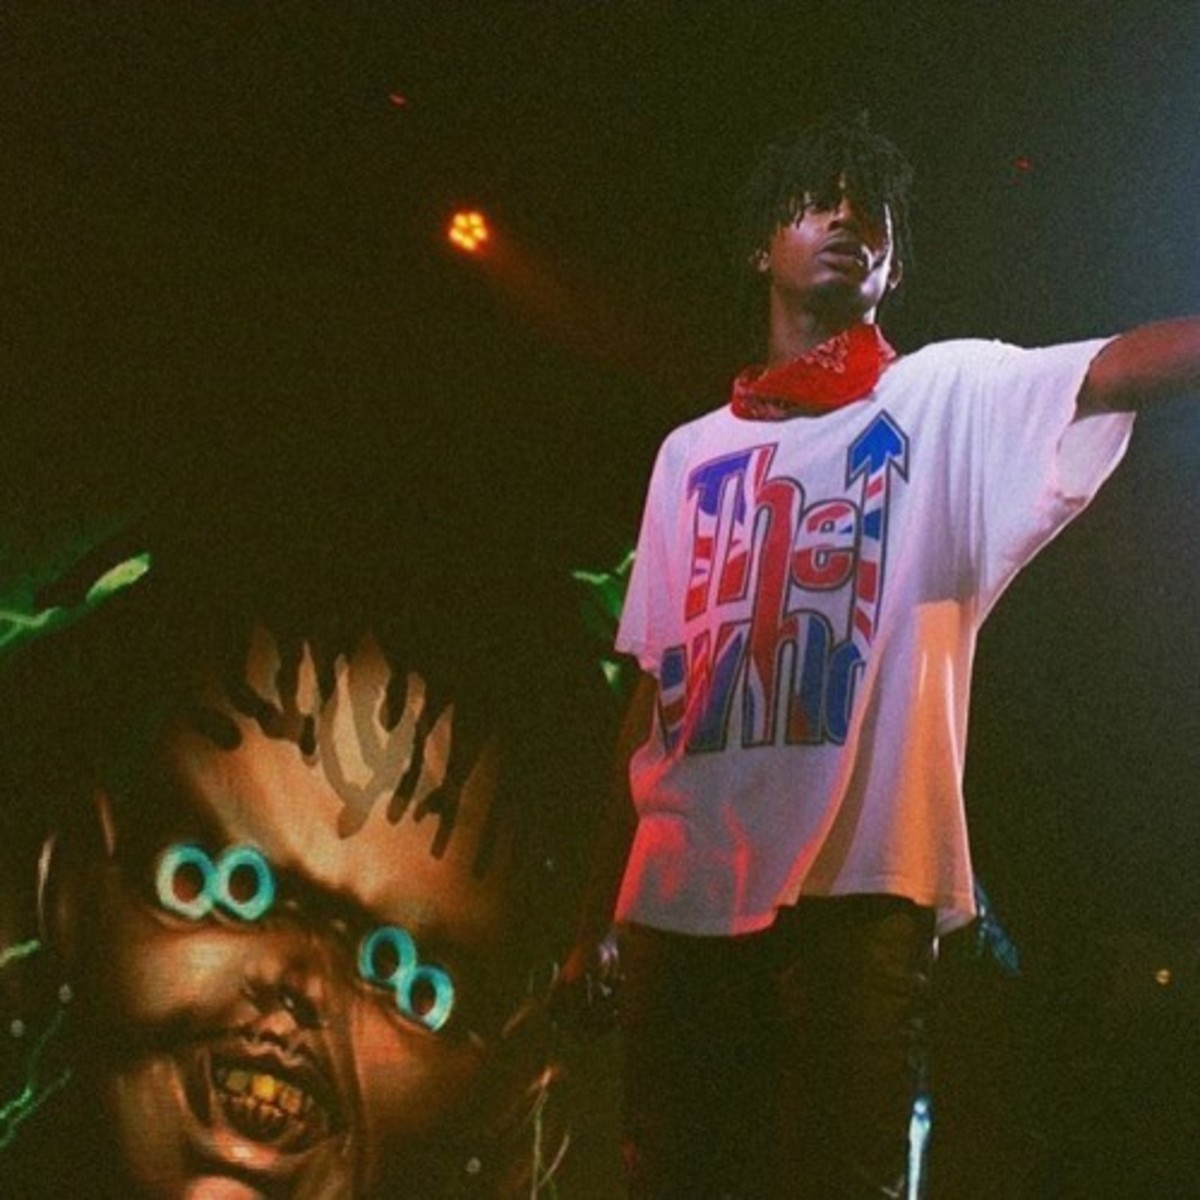 playboi-carti-red-lean.jpg